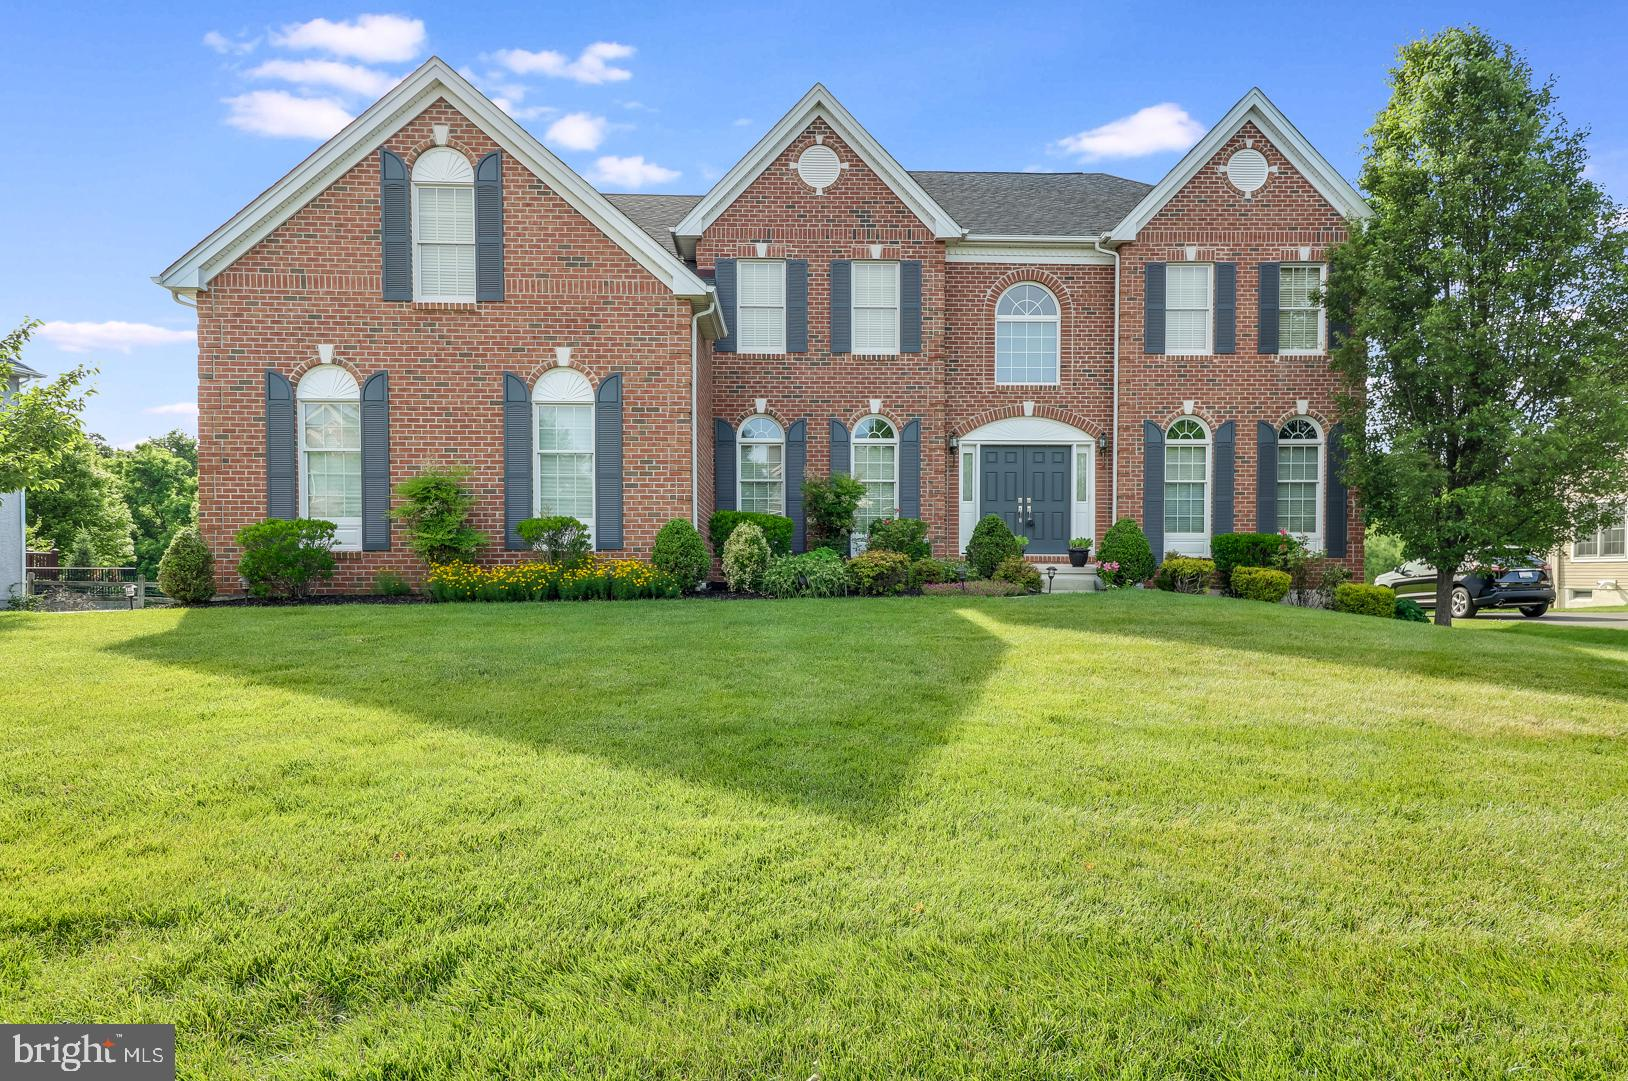 This stunning 4BR/4.1BA 6,100 square foot center hall colonial boasts virtually every Toll Bros upgrade imaginable! Sitting on a premium .46-acre lot and backing to open space and a wooded area on the quiet back side of the neighborhood, this spectacular house will check all the boxes. The moment you walk through the front door, you'll appreciate how much the owner has loved and cared for the home. The spacious 2-story center hall with custom woodwork and chandelier and eye-catching turned staircase is flanked by an elegant dining room with tray ceiling and chandelier and a formal living room with arched entries and floor to ceiling arched windows. Follow the upgraded hardwood floors into the breathtaking 2-story family room with vaulted ceiling and raised-hearth brick fireplace; massive office with double doors; spacious gourmet kitchen with granite countertops, huge center island,  pantry, and cabinets galore; and sunroom addition with vaulted ceiling and French door leading to oversized, maintenance-free, elevated composite deck. Head upstairs to the huge master bedroom with a walk-in closet that will make your knees weak and a five-piece en suite featuring a jetted soaking tub with waterfall spigot, his and hers vanities, tiled shower stall, and a large linen closet. The princess suite with private full bath and two additional bedrooms separated by a Jack & Jill bathroom round out the second floor. Head downstairs to the massive French door walk-out finished basement that has its own heating/cooling zone, tons of recessed lights, a full tile bathroom, and two separate finished rooms that could be used as a fitness room and additional office space.